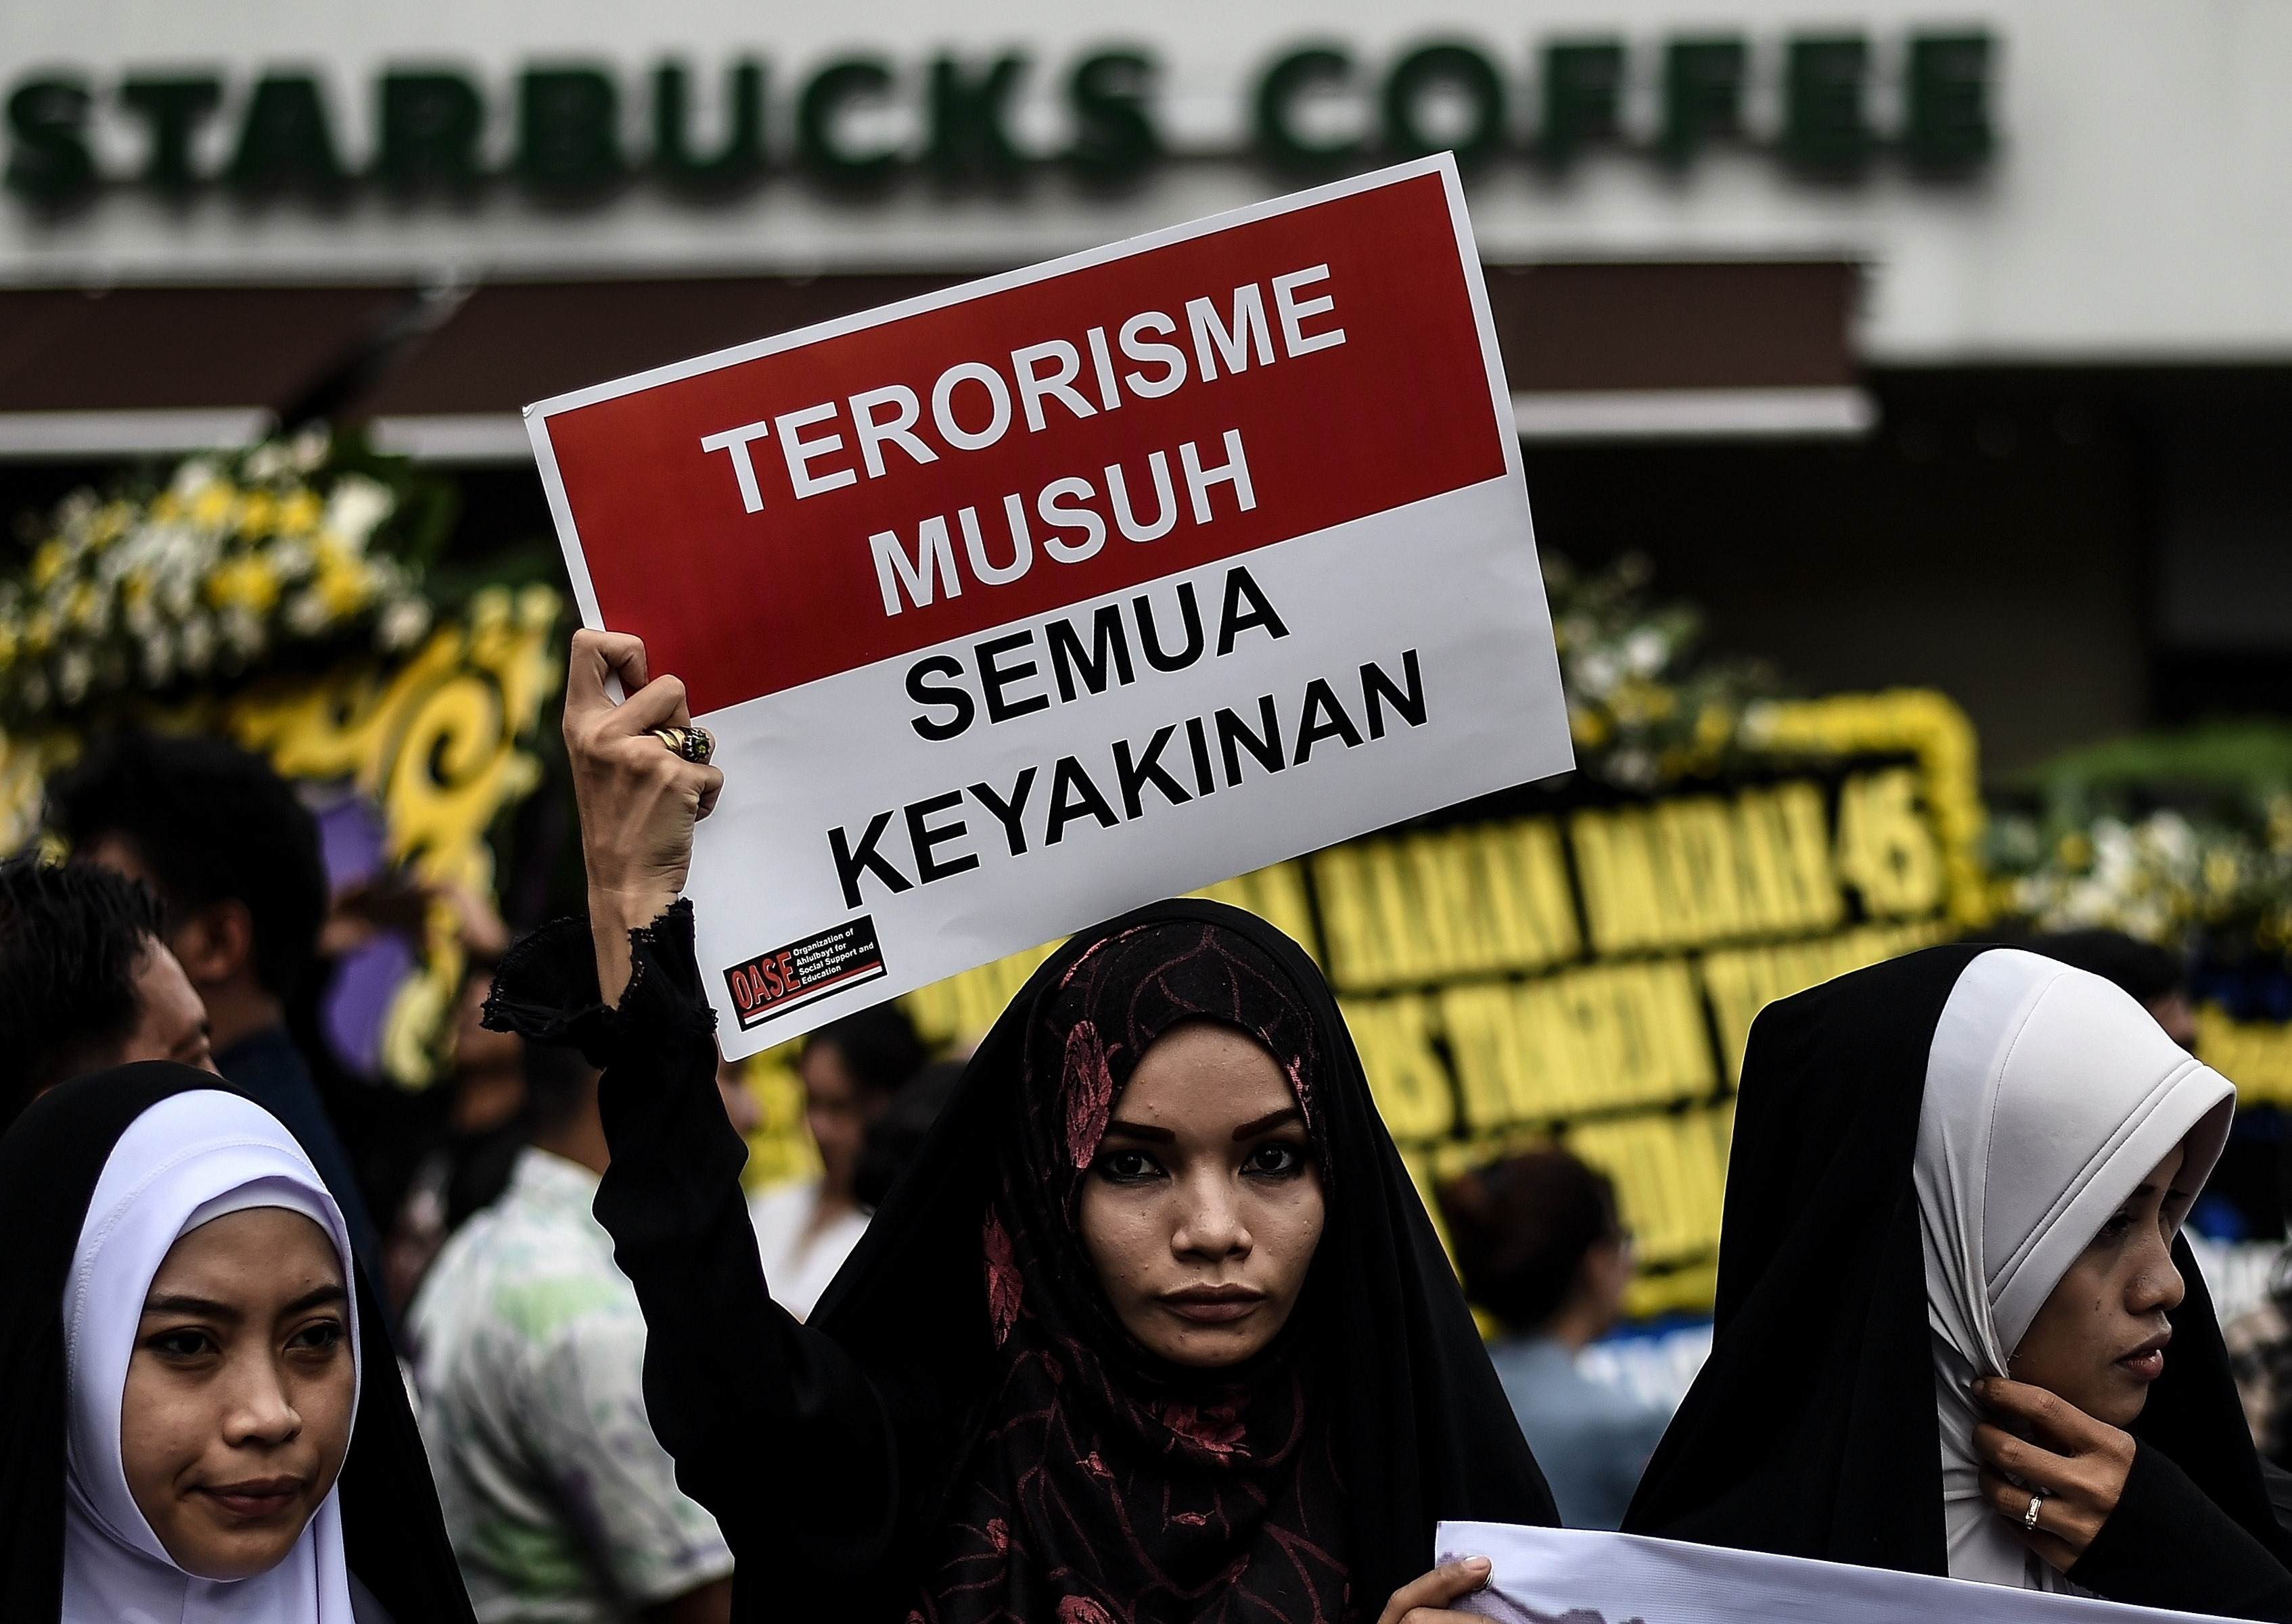 Women hold placards during a vigil outside the damaged Starbucks coffee shop in central Jakarta on Jan. 15, 2016, a day after a series of explosions hit the Indonesian capital